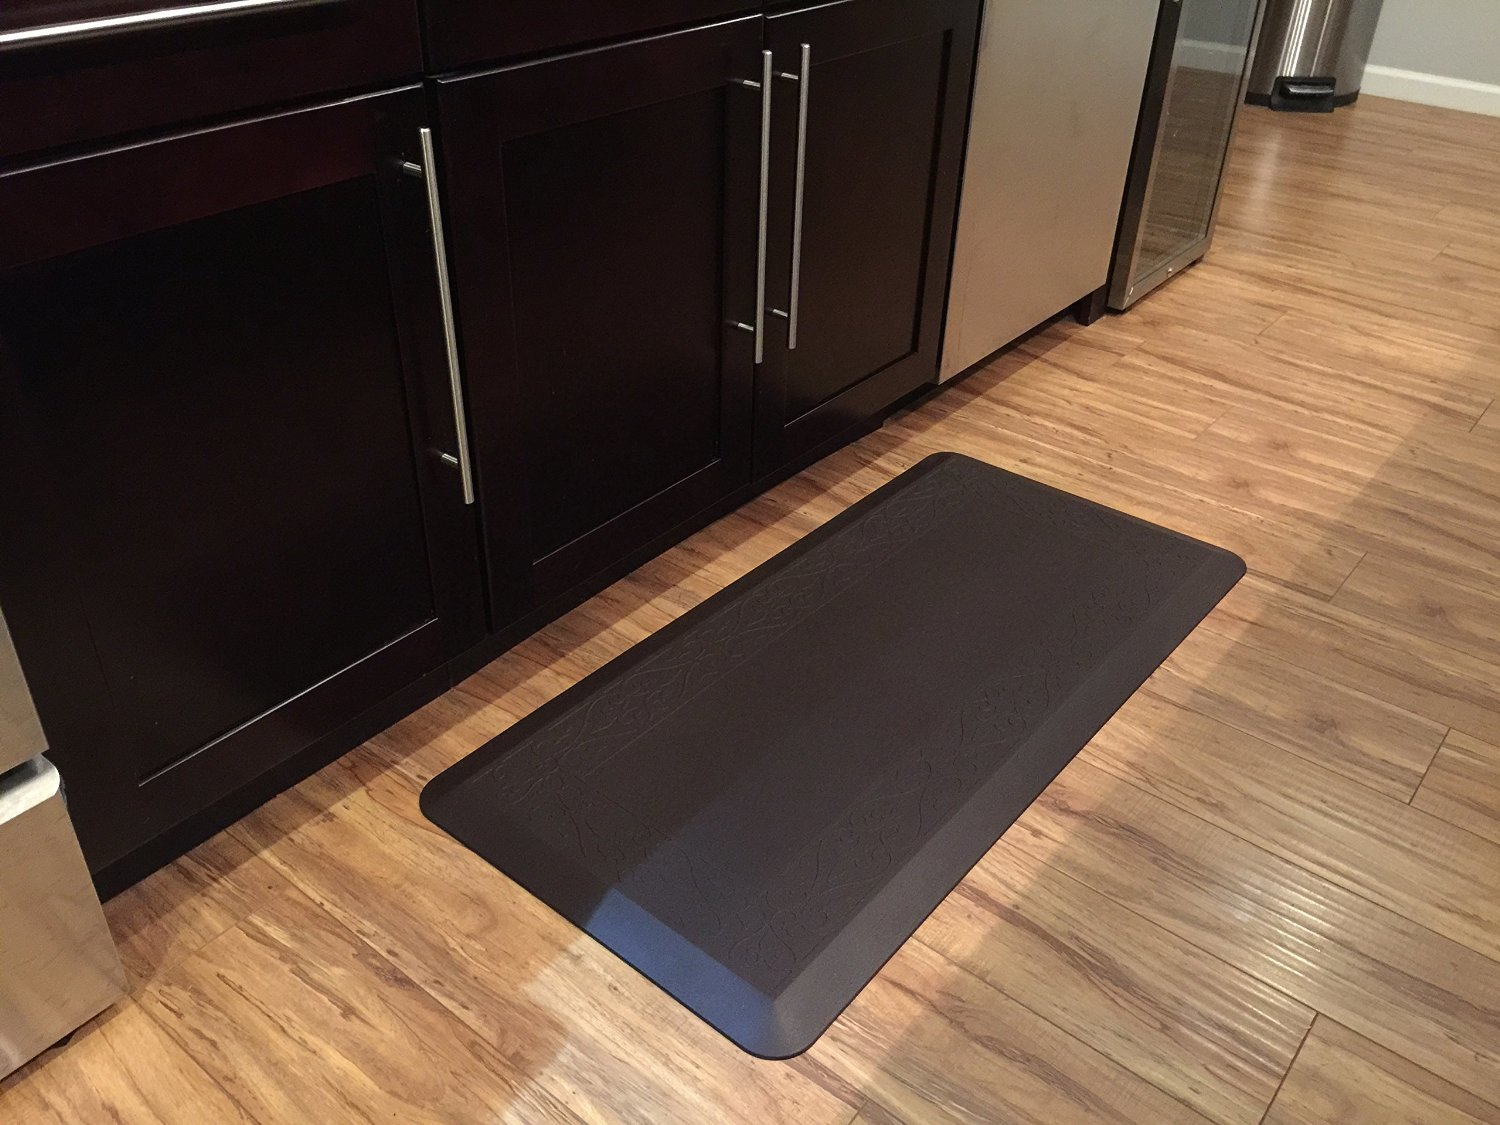 kitchen mats amazon play for toddler novaform anti fatigue mat 20in x 42in color dark